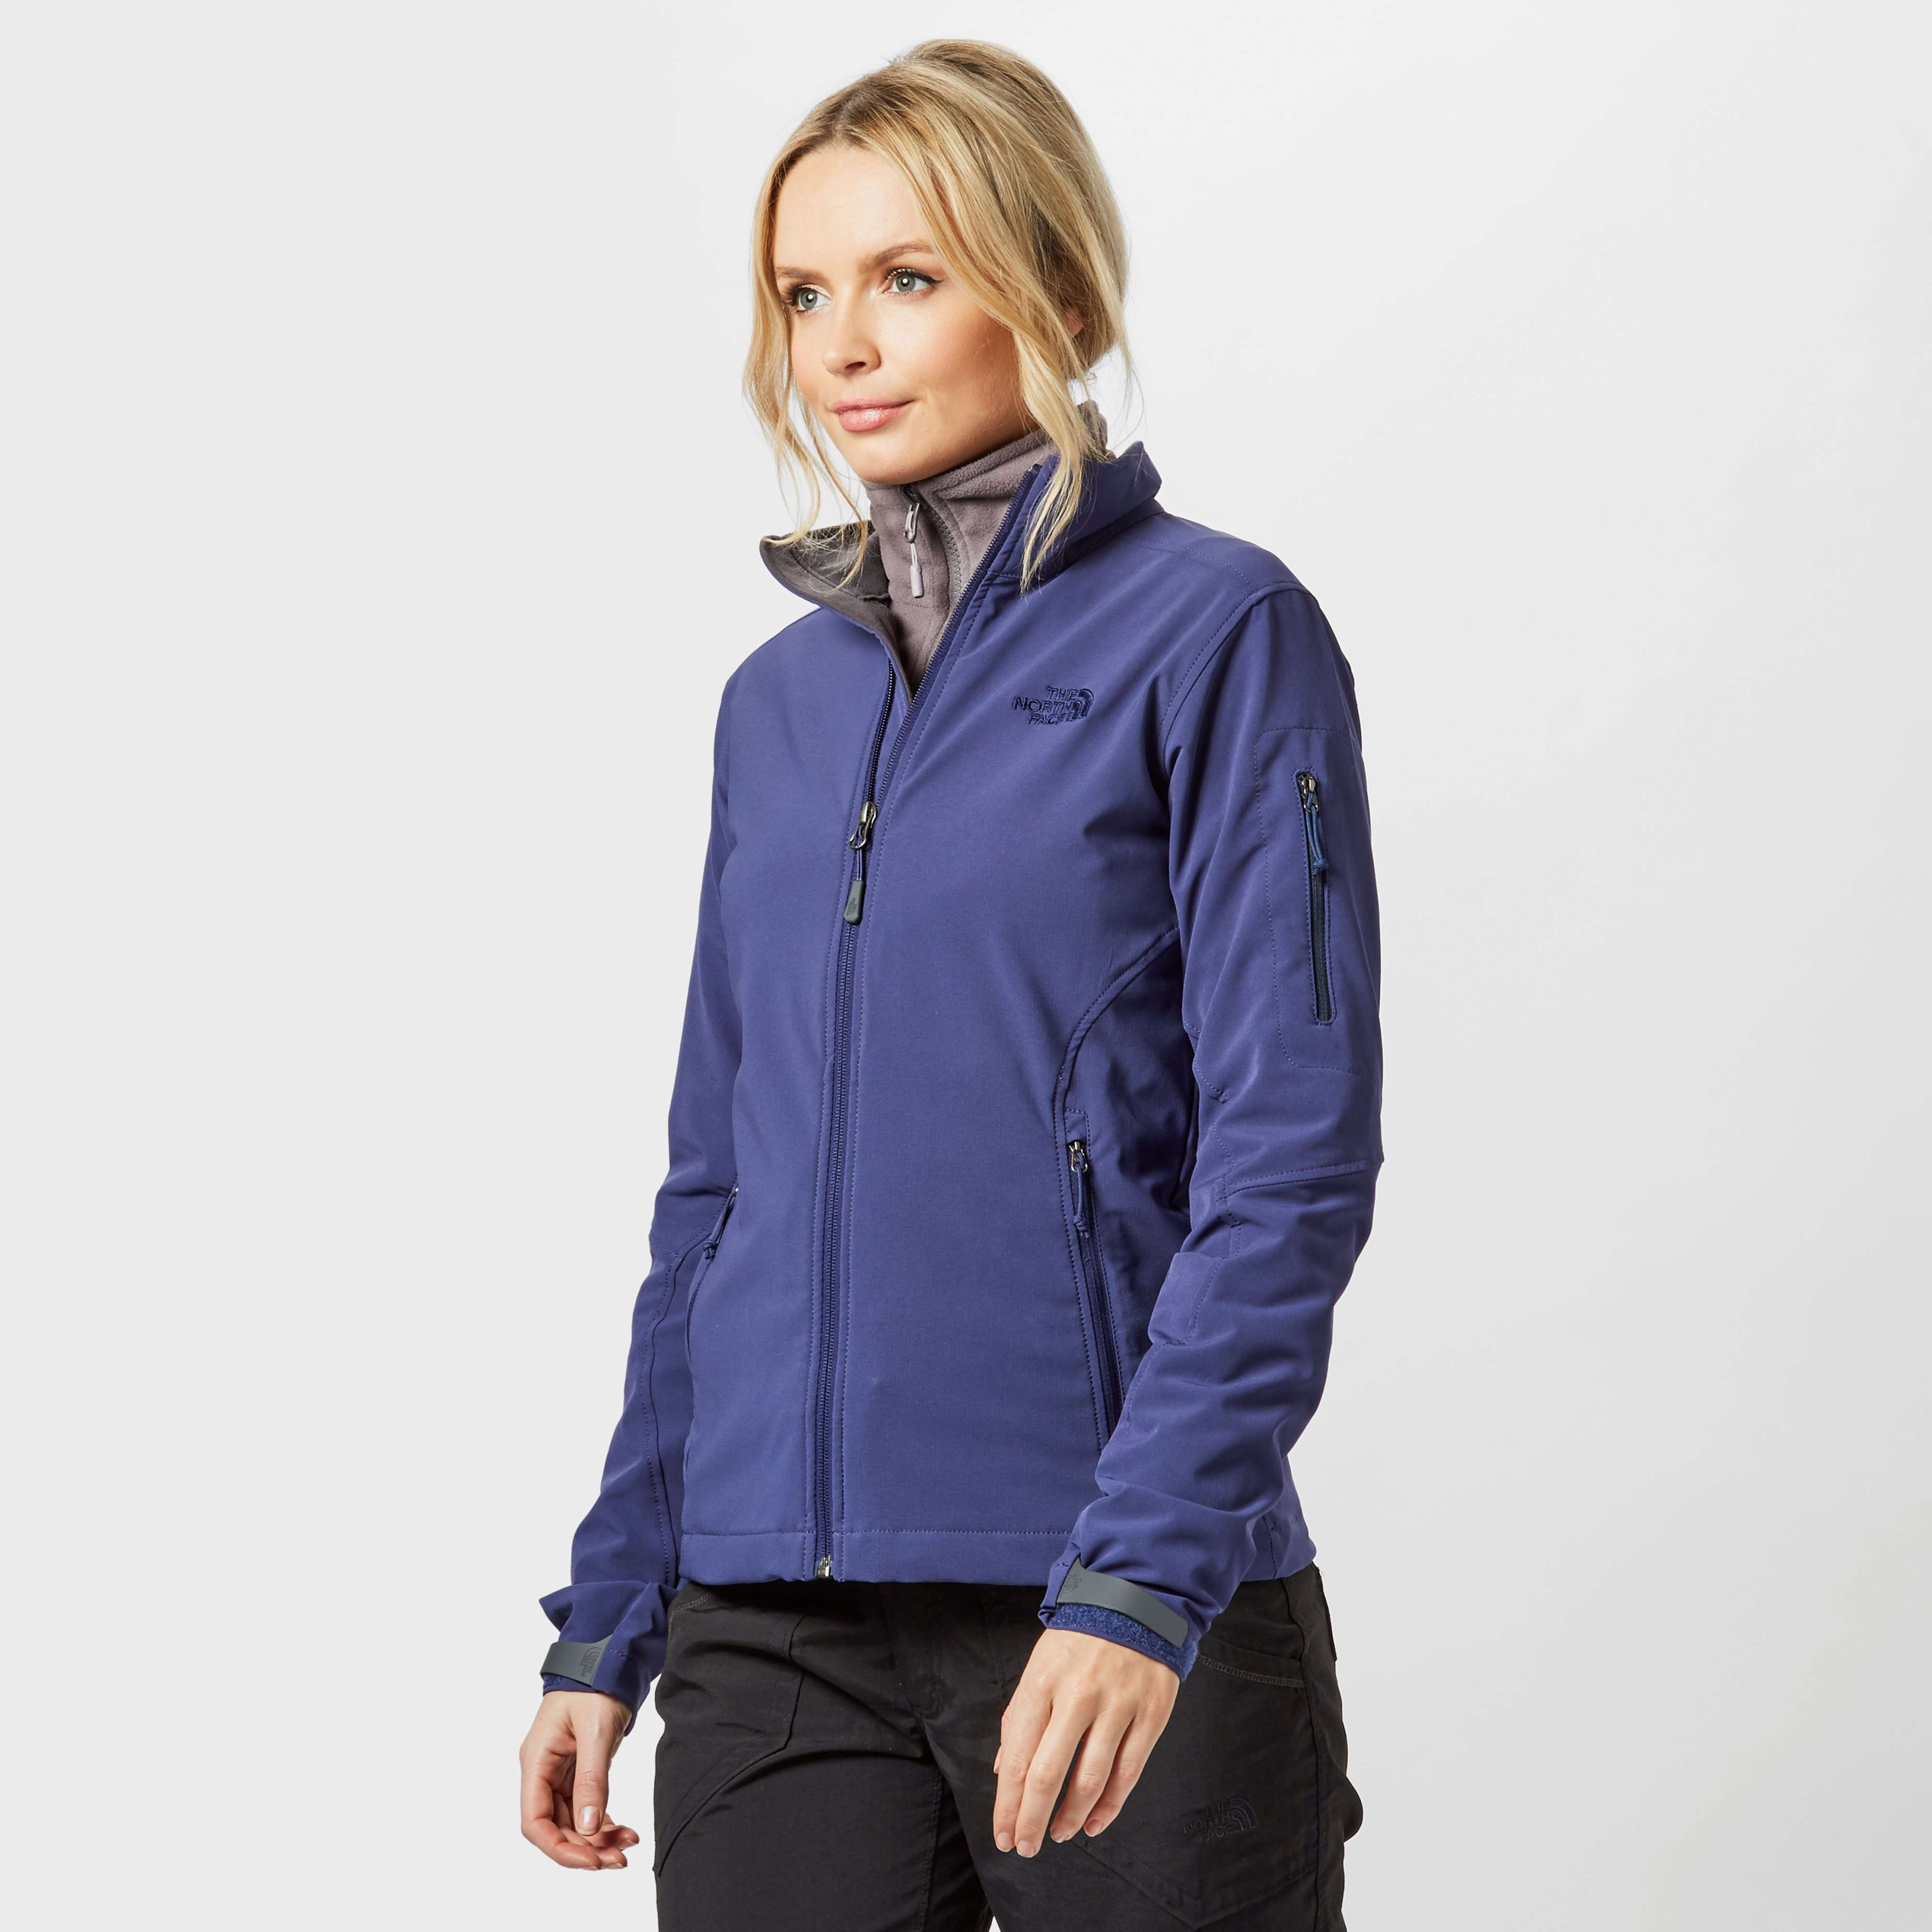 THE NORTH FACE Women's Ceresio Jacket